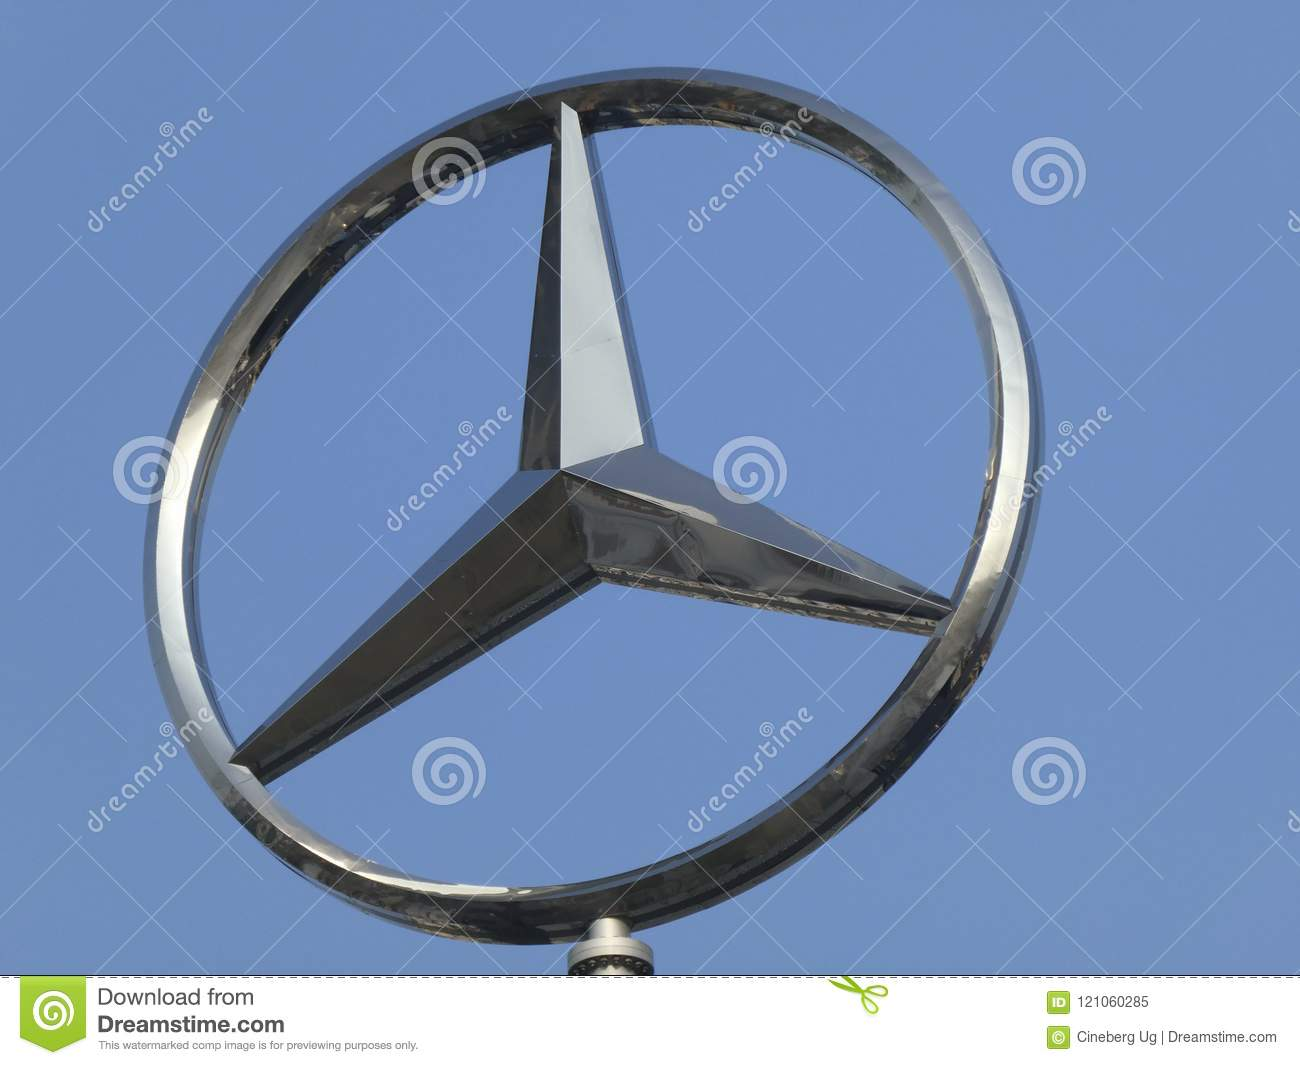 Mercedes Benz Symbol On The Top Of A Building Stock Image Image